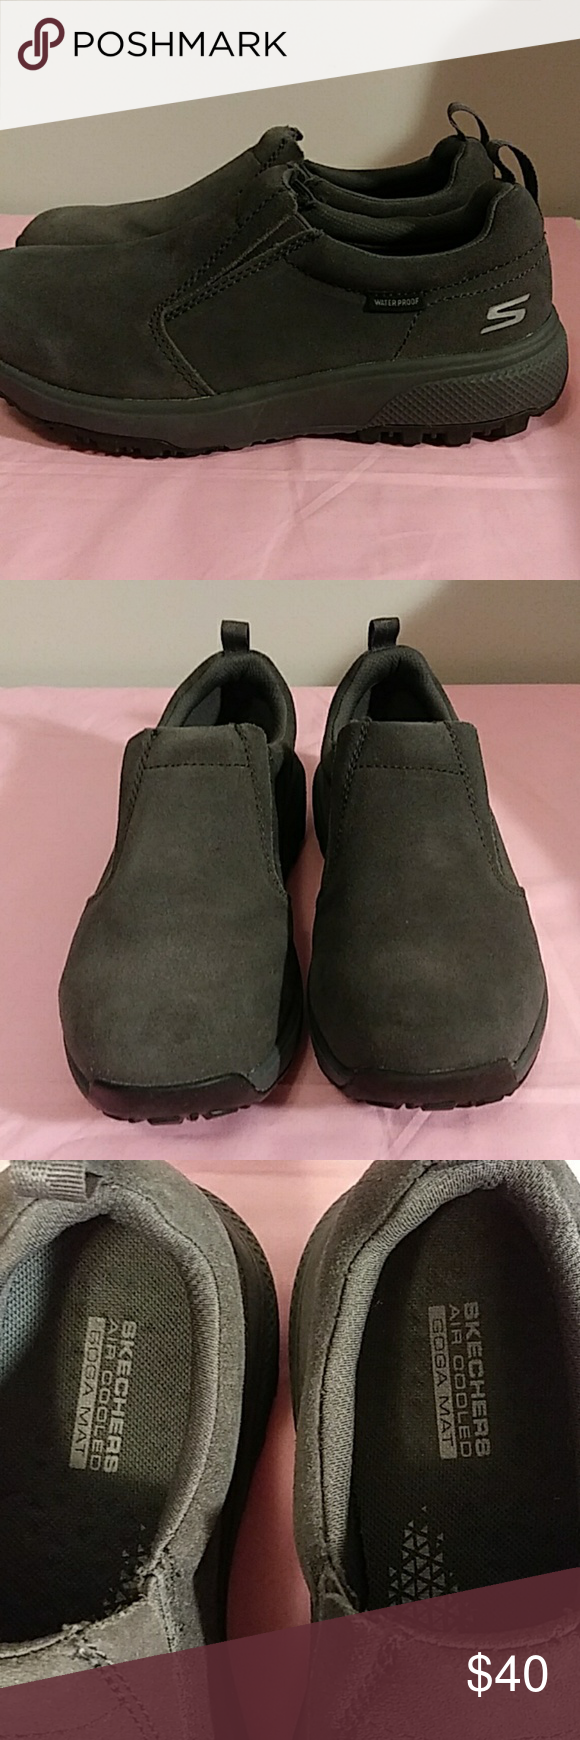 Brand New Sketchers On The Go Outdoor Charcoal Nwt Ultra Shoes